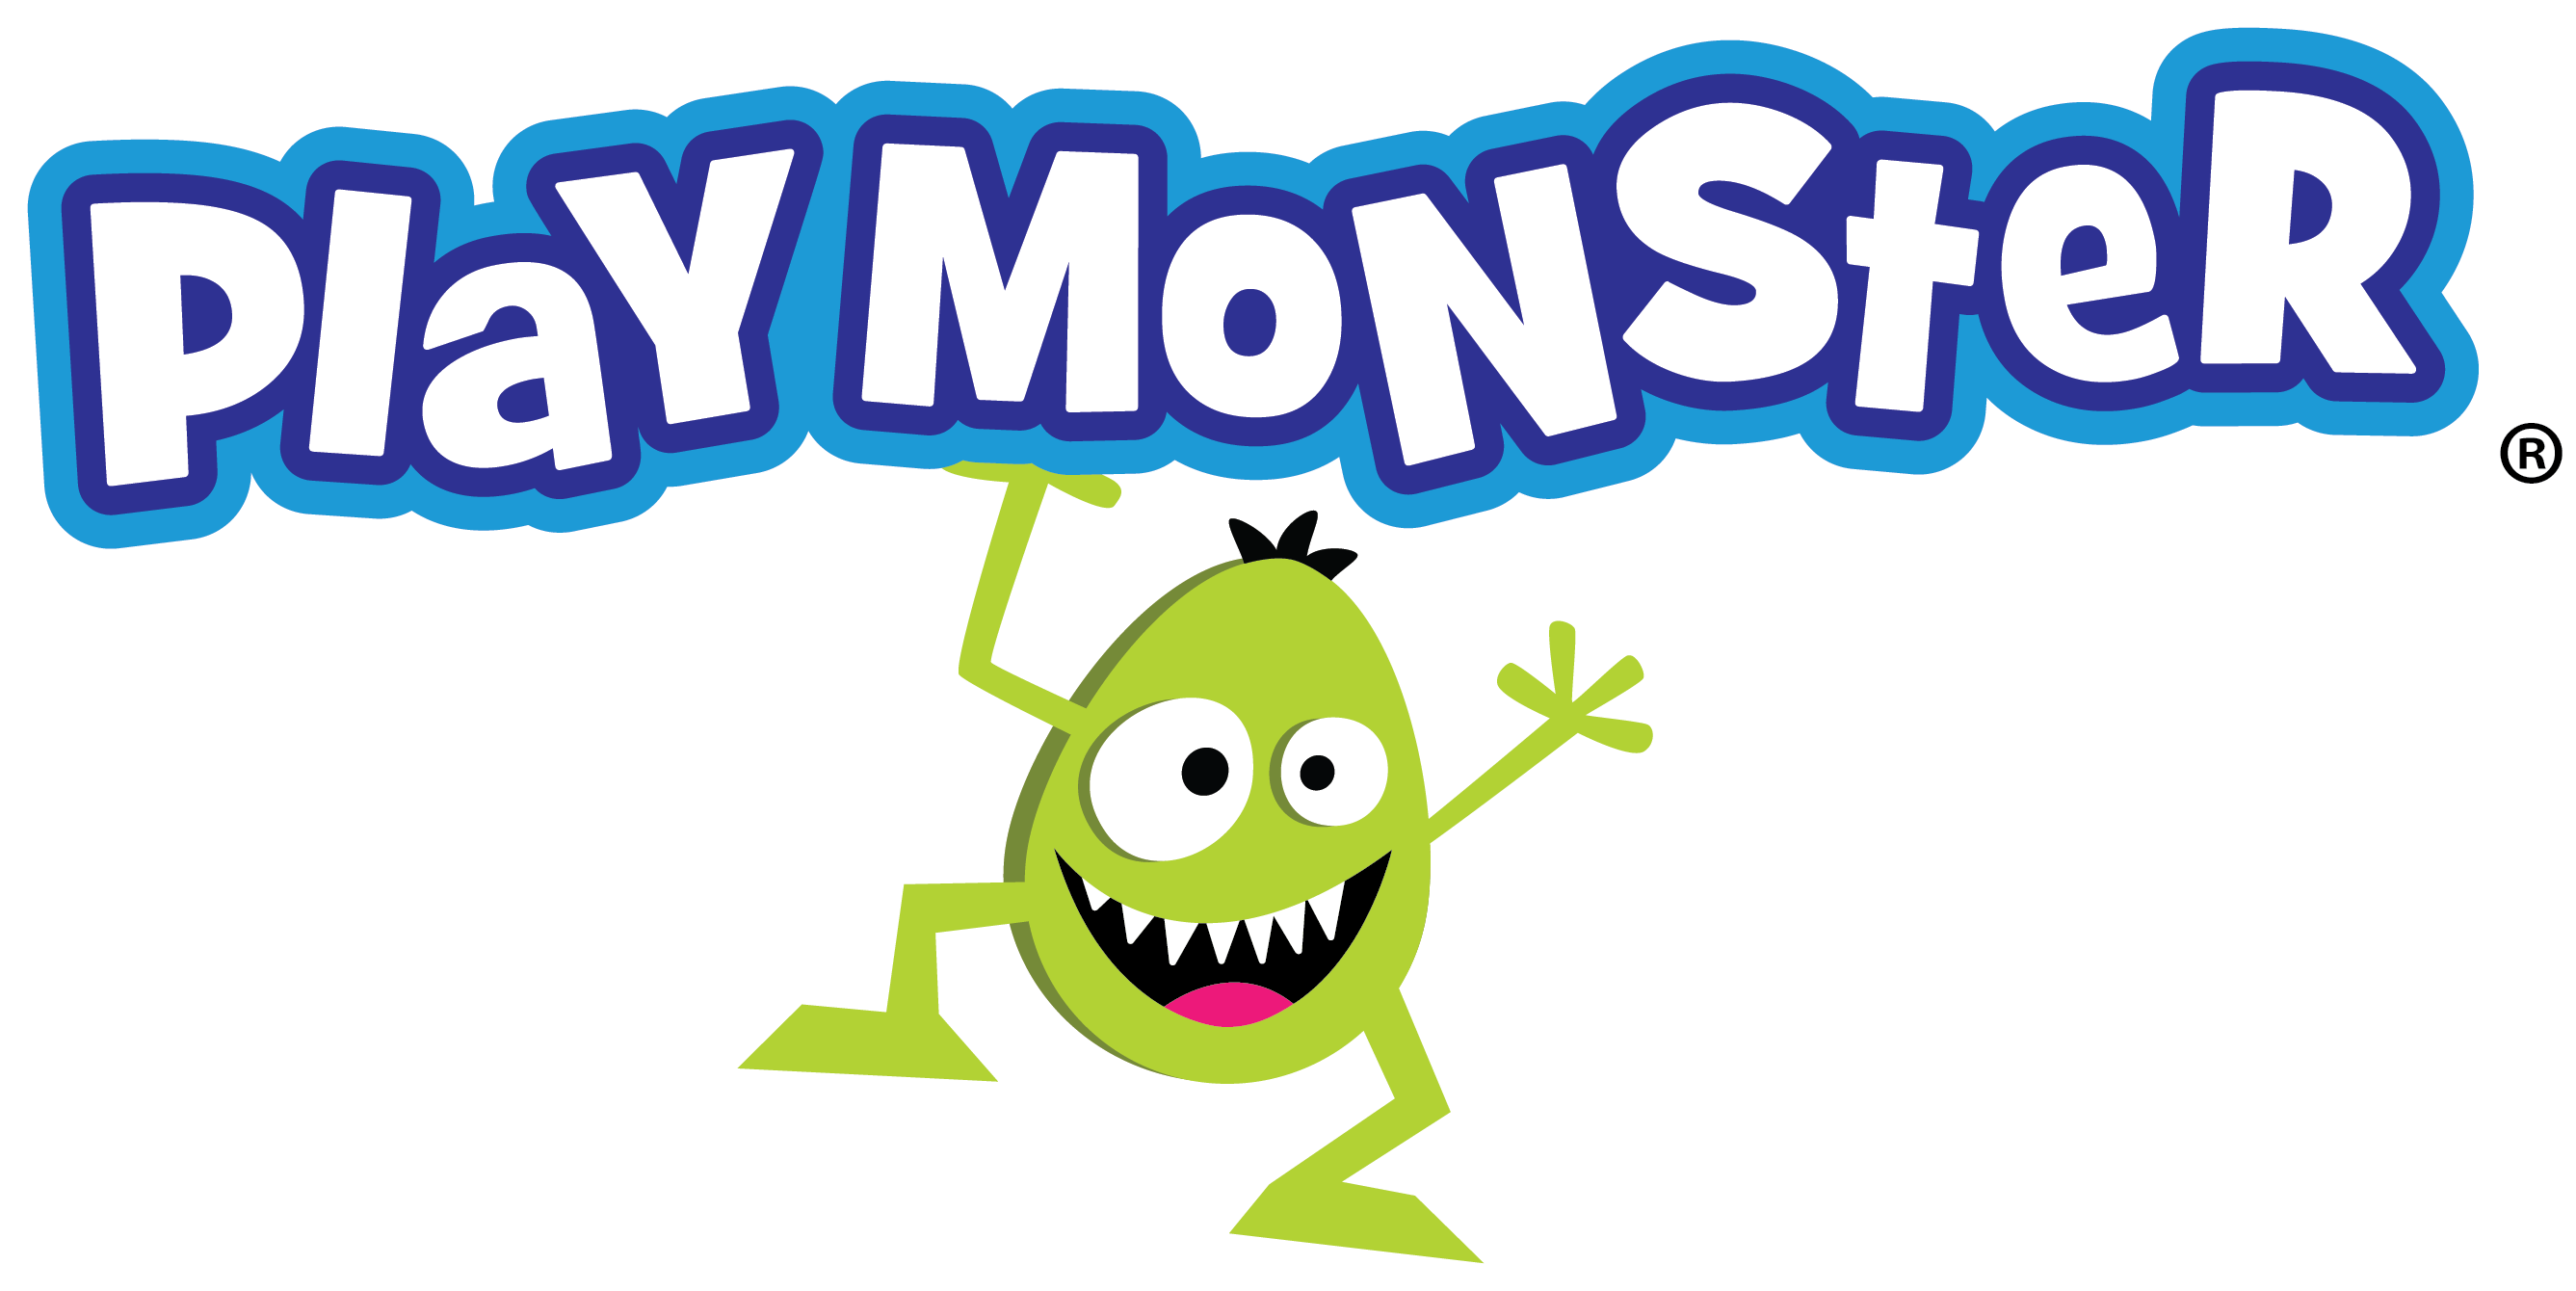 Christmas Gift Guide 2018 Play Monster Presents Games & Toys ...